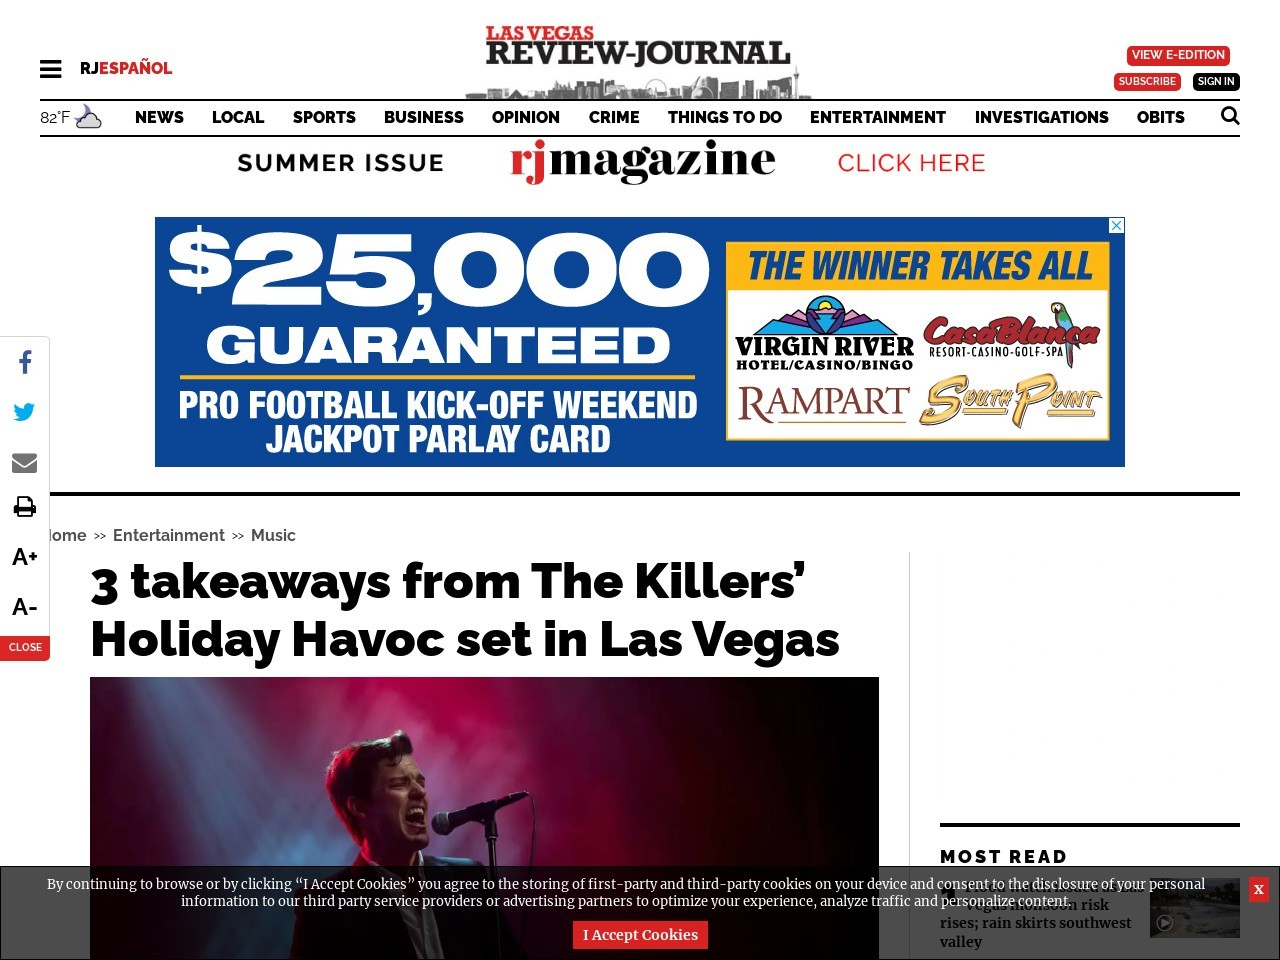 3 takeaways from The Killers' Holiday Havoc set in Las Vegas